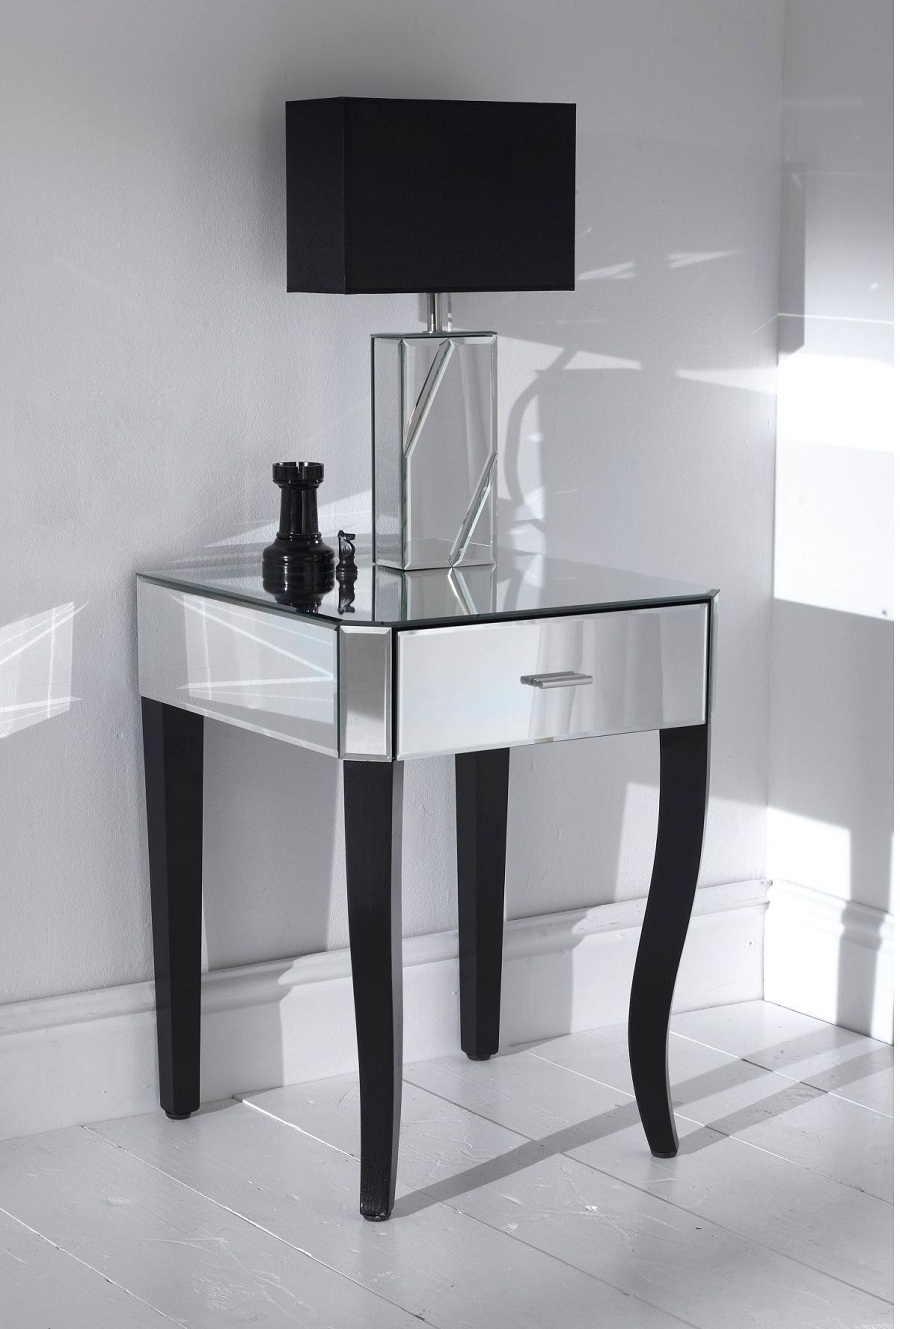 Image of: Glass Bedside Table Ideas